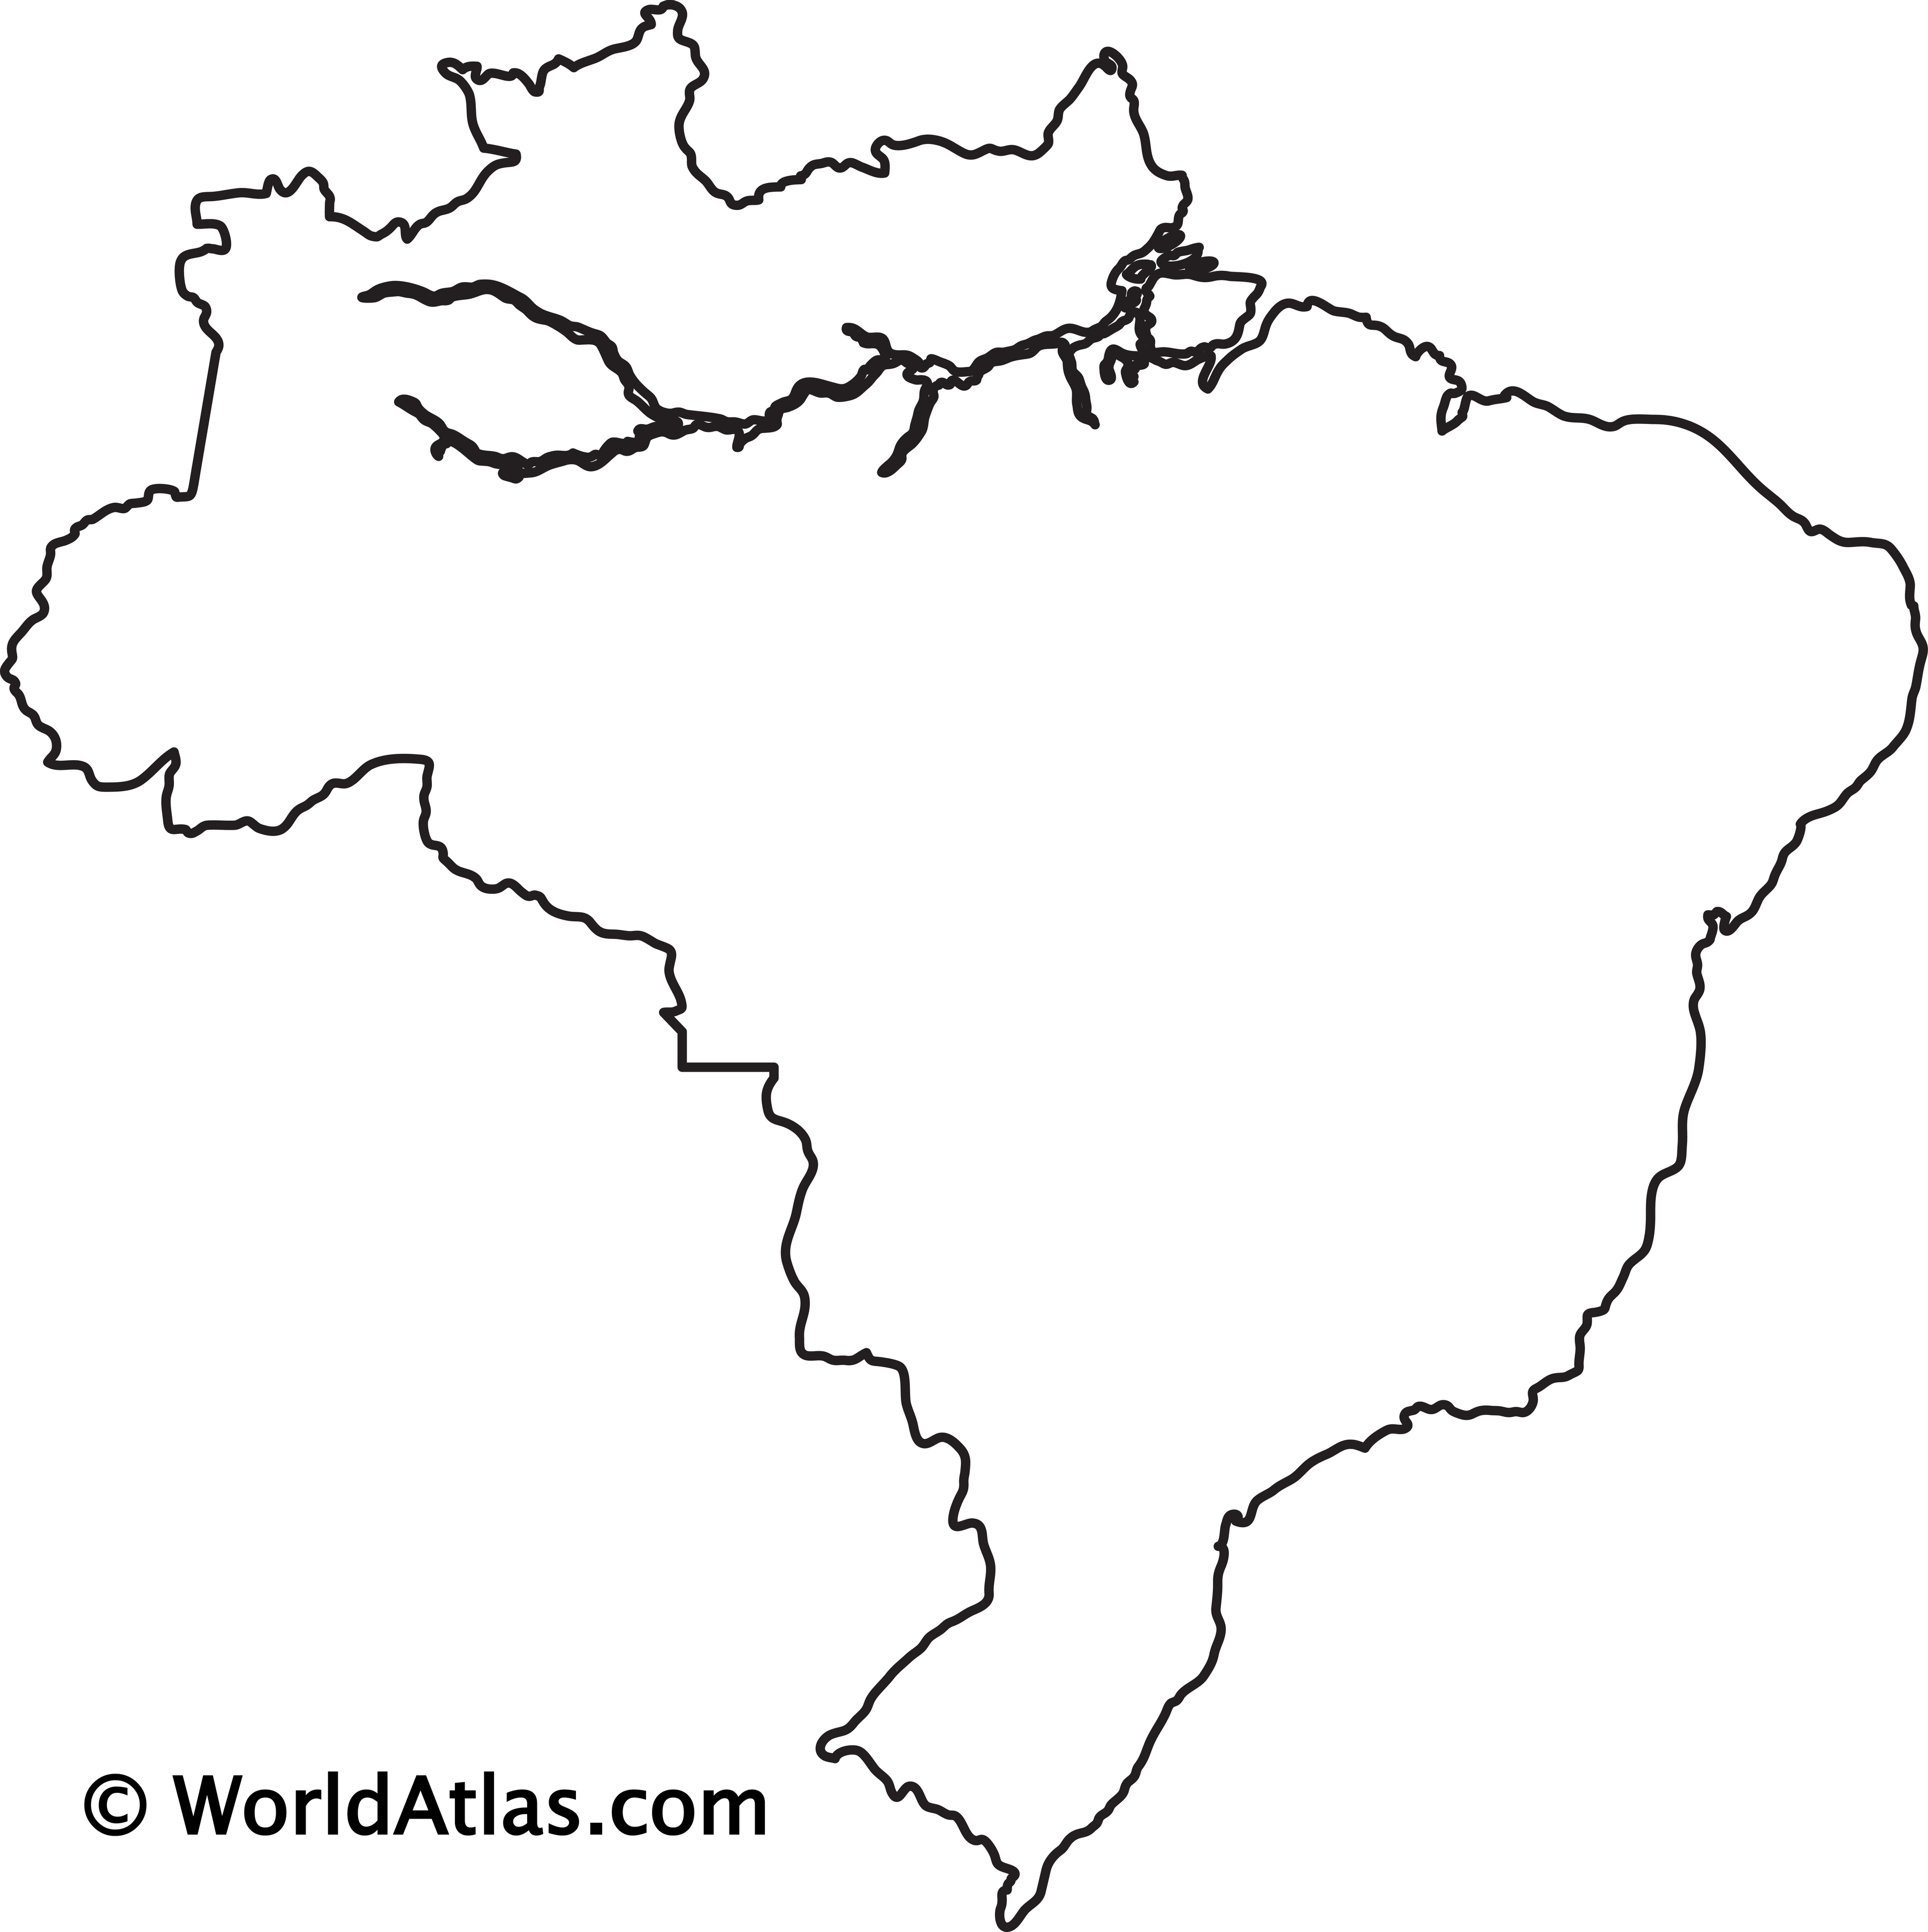 Blank Outline Map of Brazil